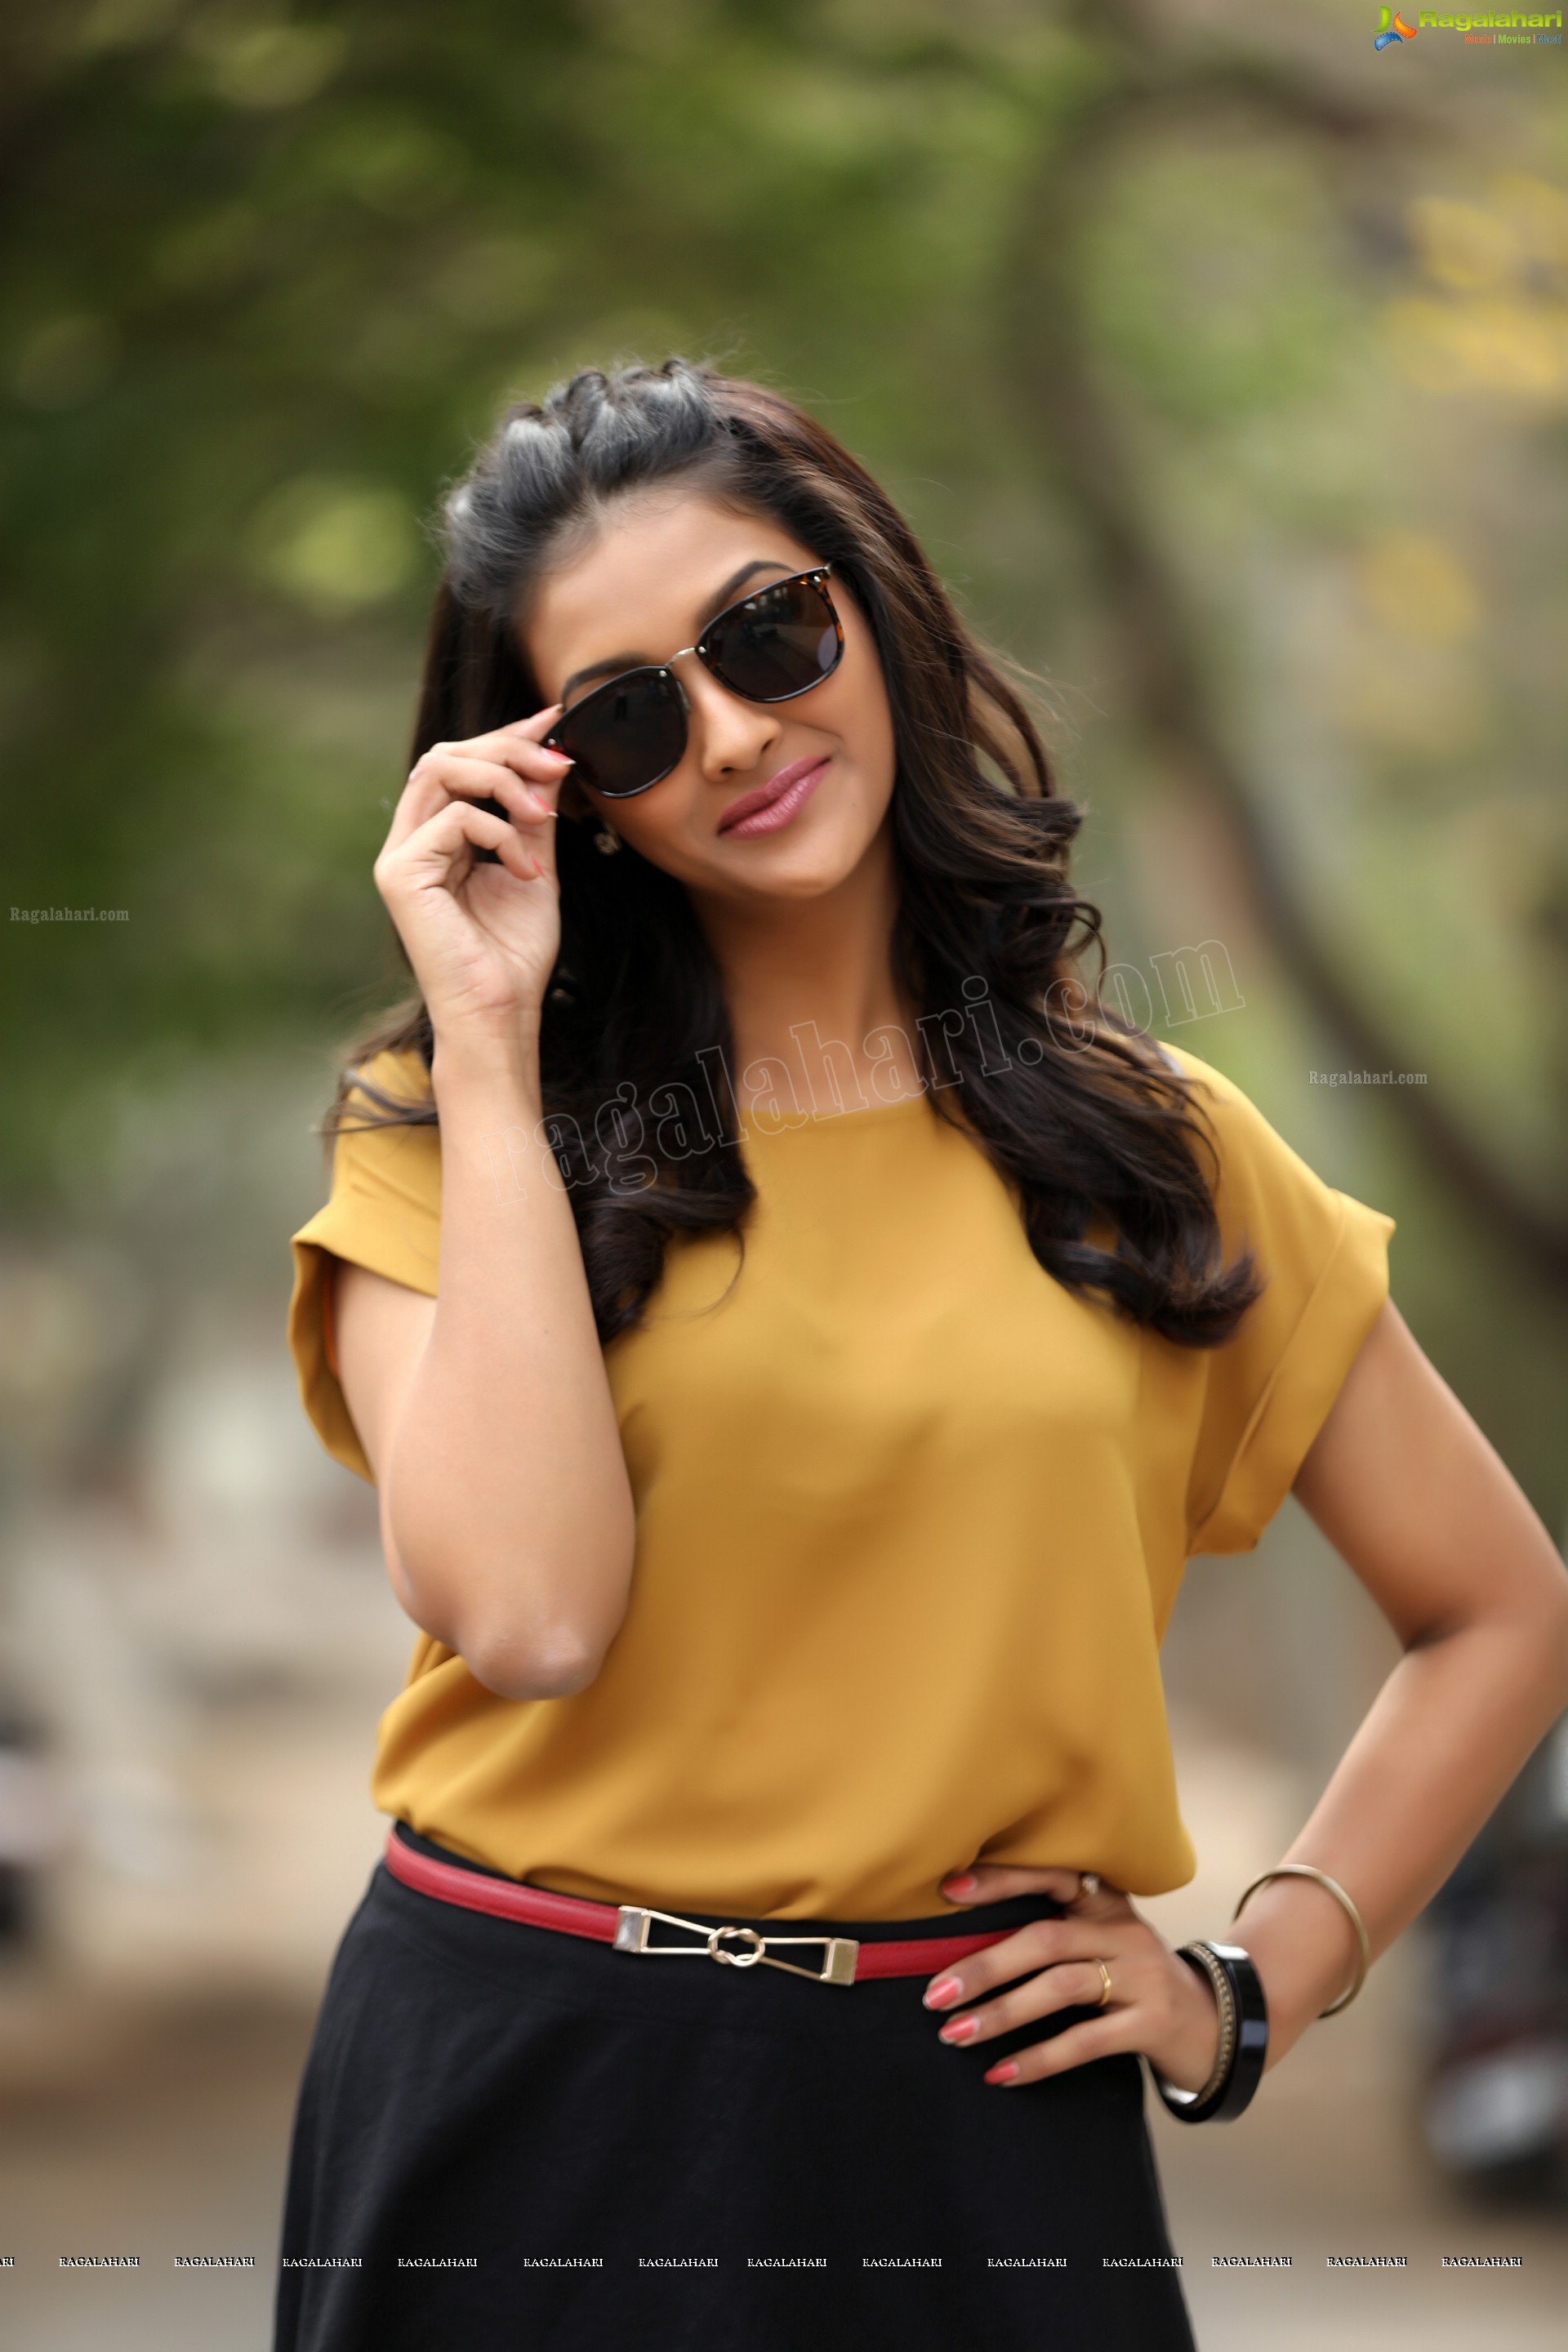 pics57.ru Pooja Jhaveri (Exclusive) (High Definition) Image 57 | Telugu Actress  Posters,Images, Pics, Pictures, Photoshoot, Wallpapers